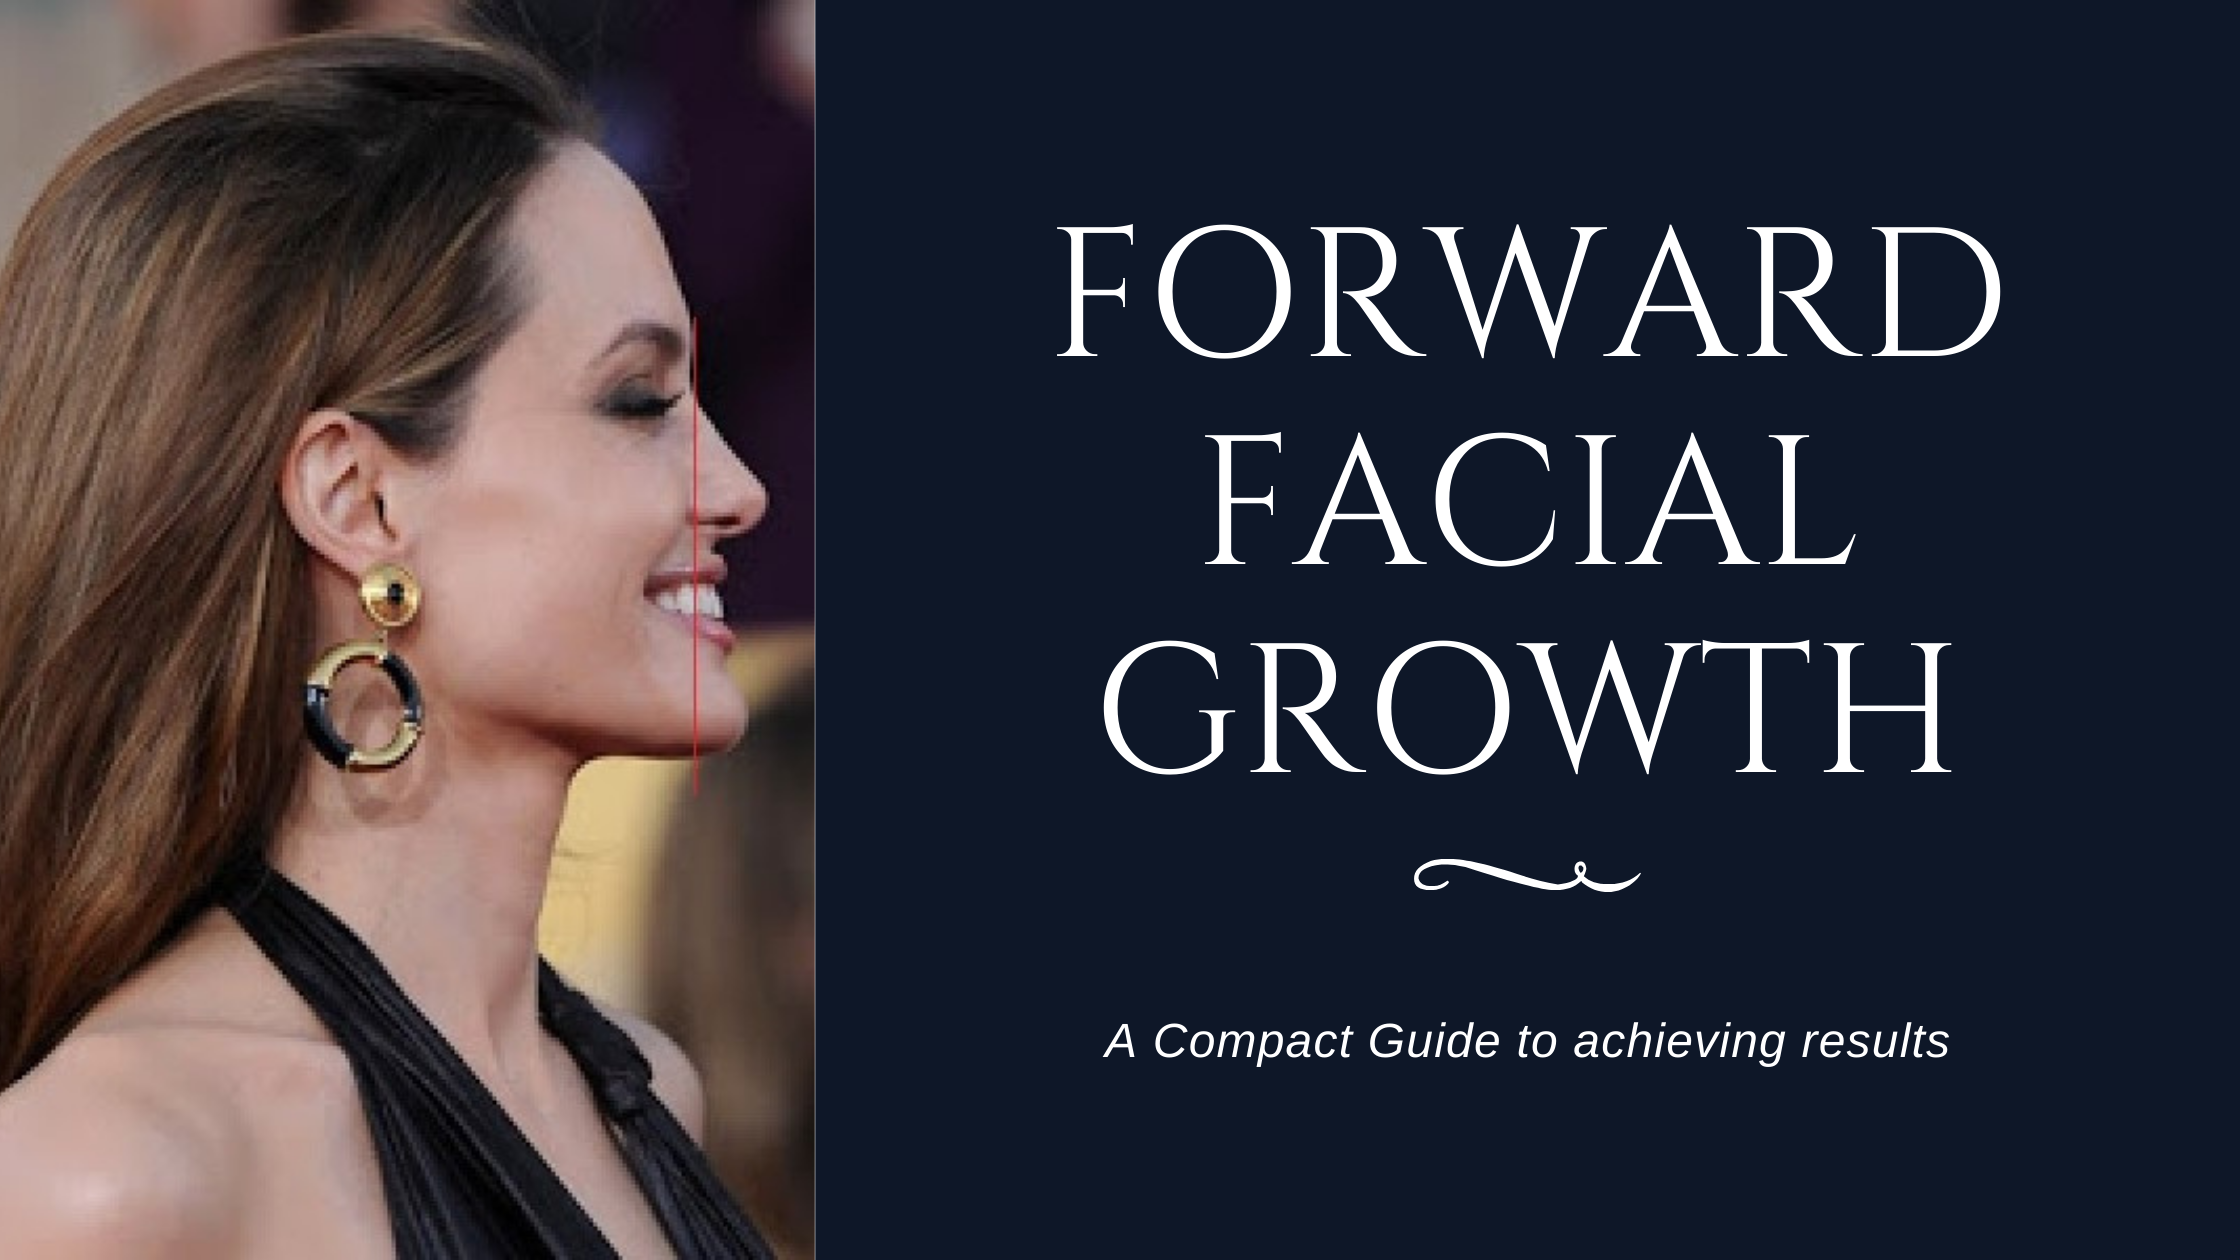 Forward Facial Growth: A Compact Guide